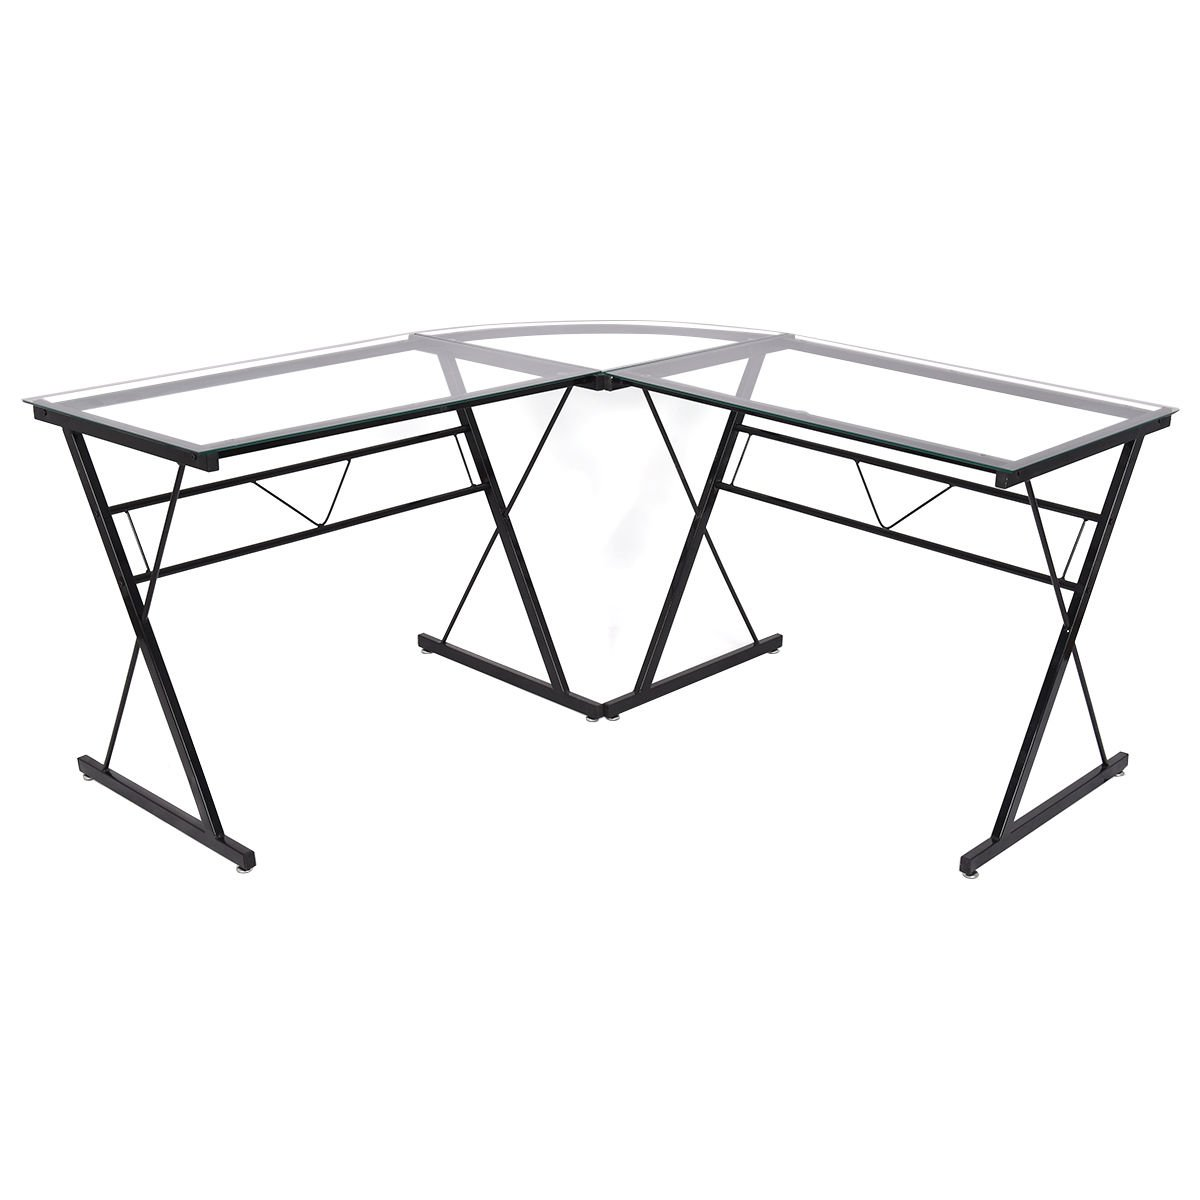 TANGKULA Computer Desk Modern Simple Style 3-Piece Metal Frame Study Laptop Writing Gaming Table Workstation Home Office Studio Glass L- shaped Corner Desk